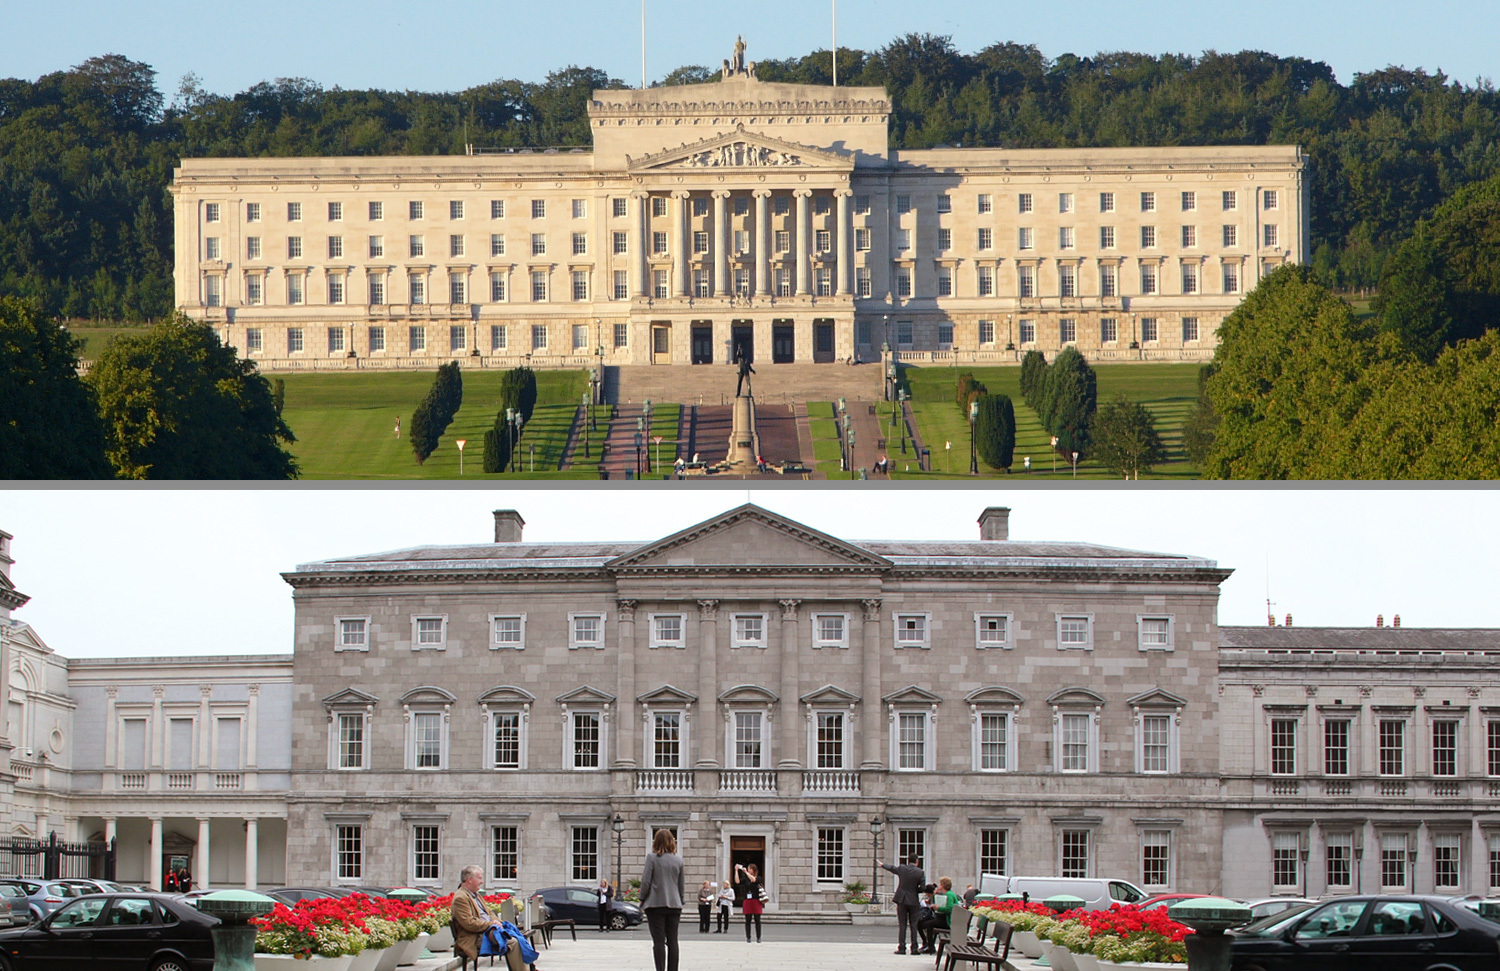 The unfolding Dáil election has big implications for NI politics